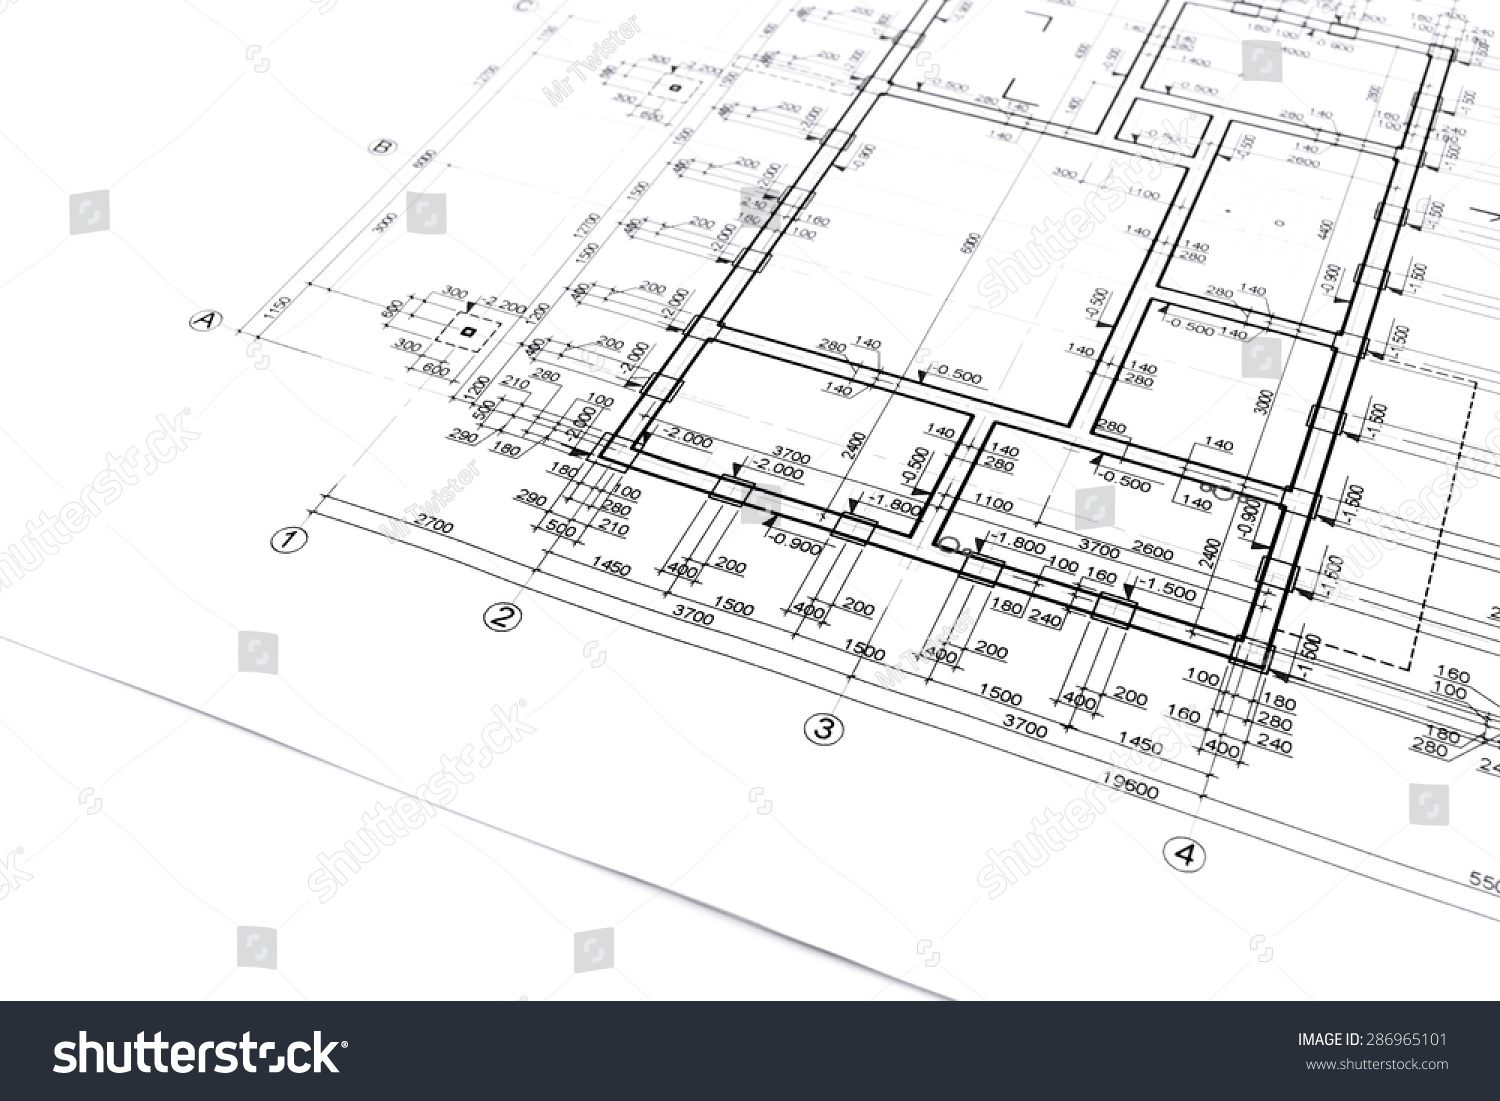 architectural drawings floor plans. Blueprint Floor Plans, Engineering And Architecture Drawings Architectural Plans